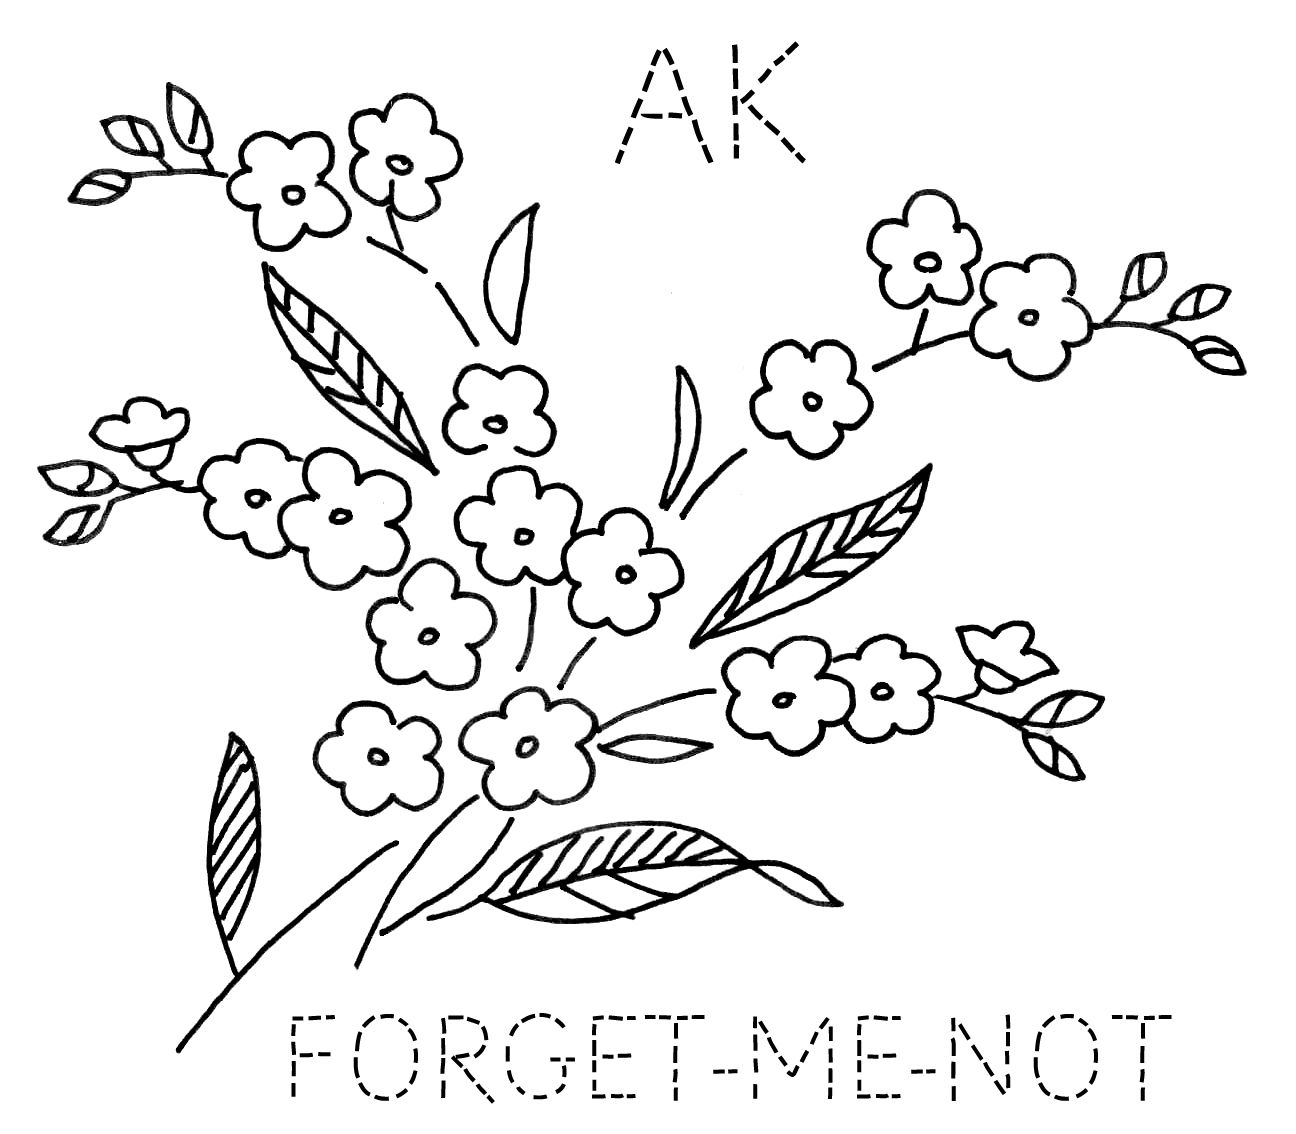 Forget me not flower coloring page on forget macromedia forget me not flowers alaska google search tree top tees forget me not flowers alaska google search ccuart Image collections